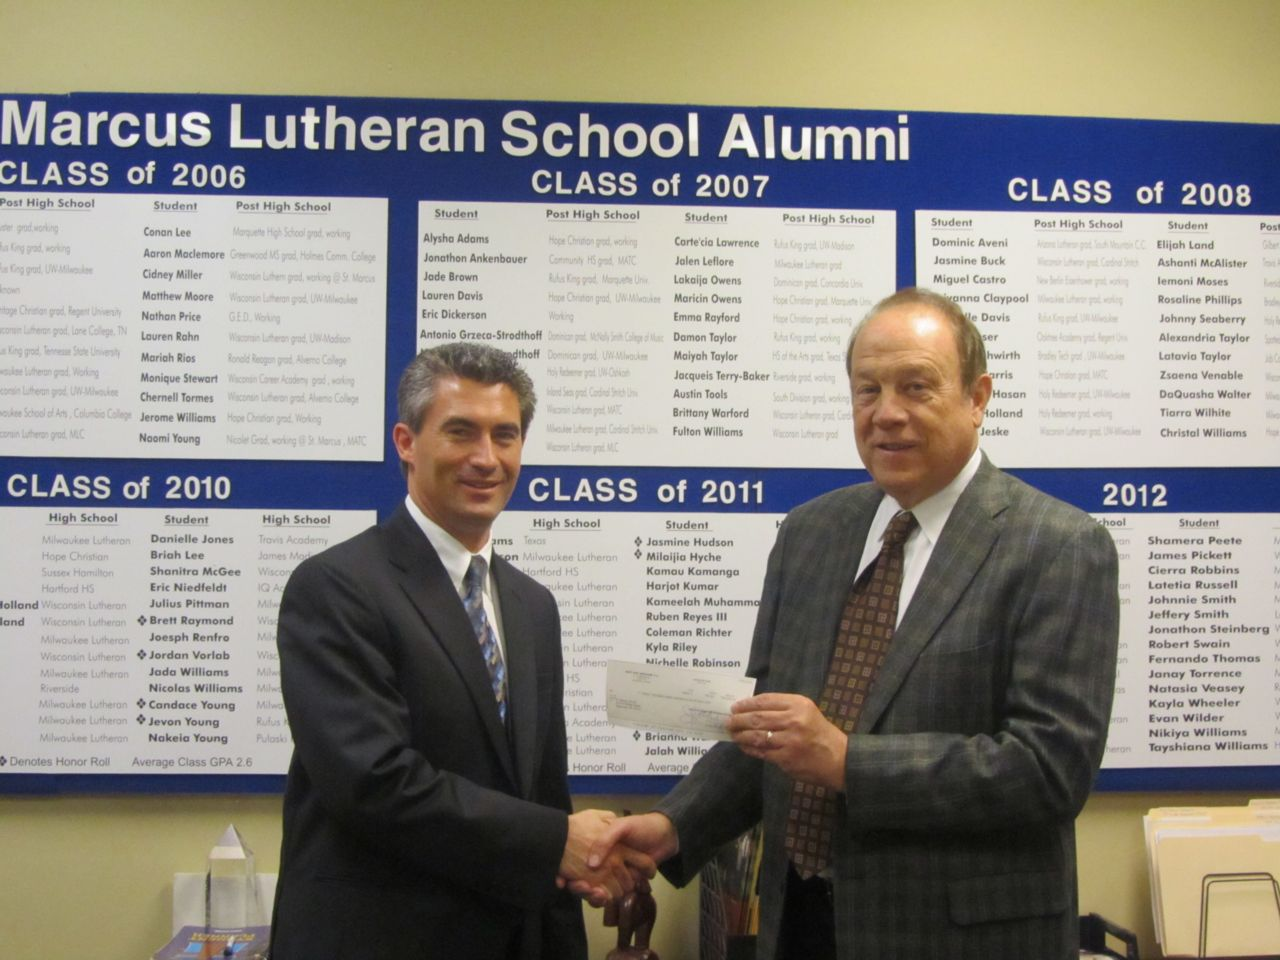 Attorney Hupy presenting check to St. Marcus Lutheran School